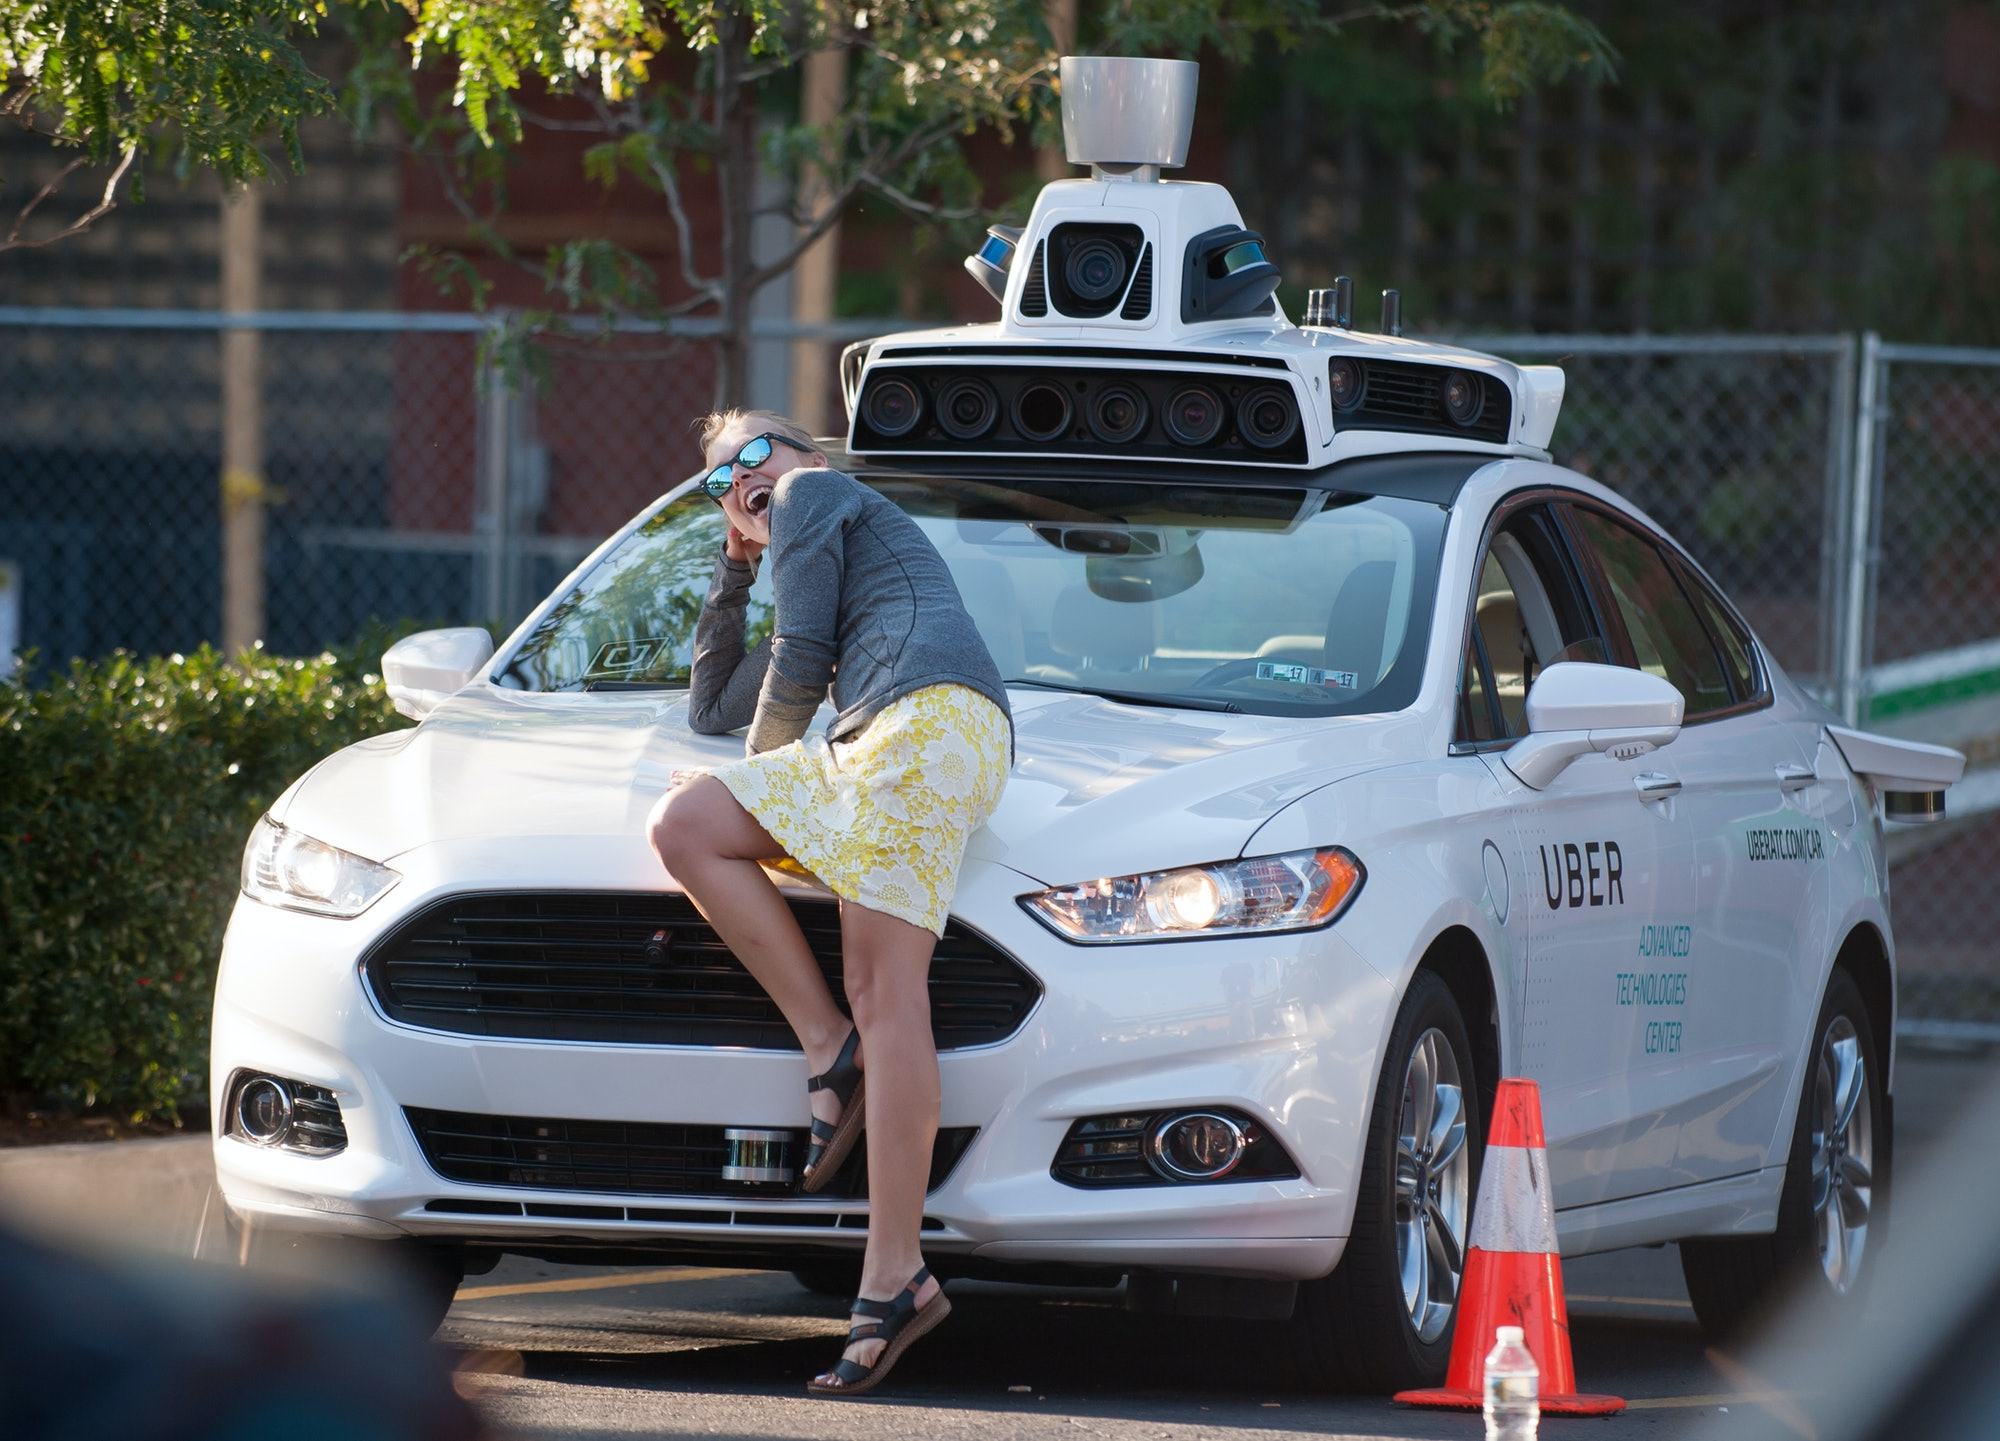 PITTSBURGH, PA - SEPTEMBER 22: A woman poses with an Uber driverless Ford Fusion as it sits in the Uber Technical Center parking lot onSeptember,22, 2016 in Pittsburgh, Pennsylvania. Uber has built its Uber Technical Center in Pittsburgh and is developing an autonomous vehicle that it hopes will be able to transport its millions of clients without the need for a driver. (Photo by Jeff Swensen/Getty Images)